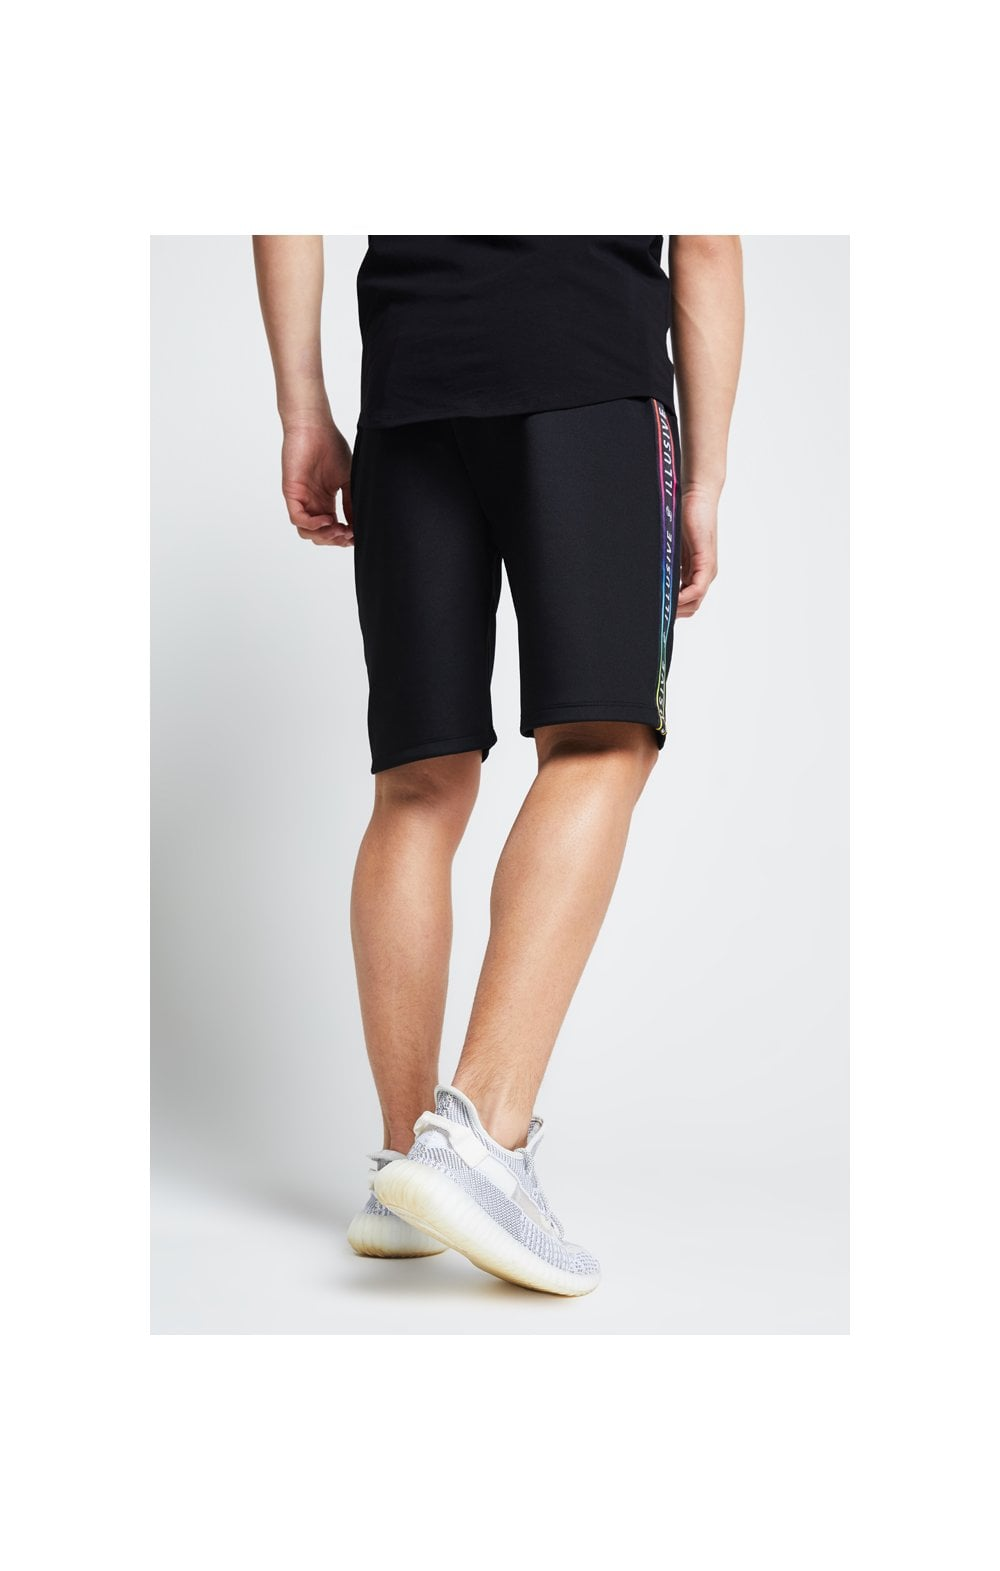 Illusive London Tape Jersey Shorts - Black (3)